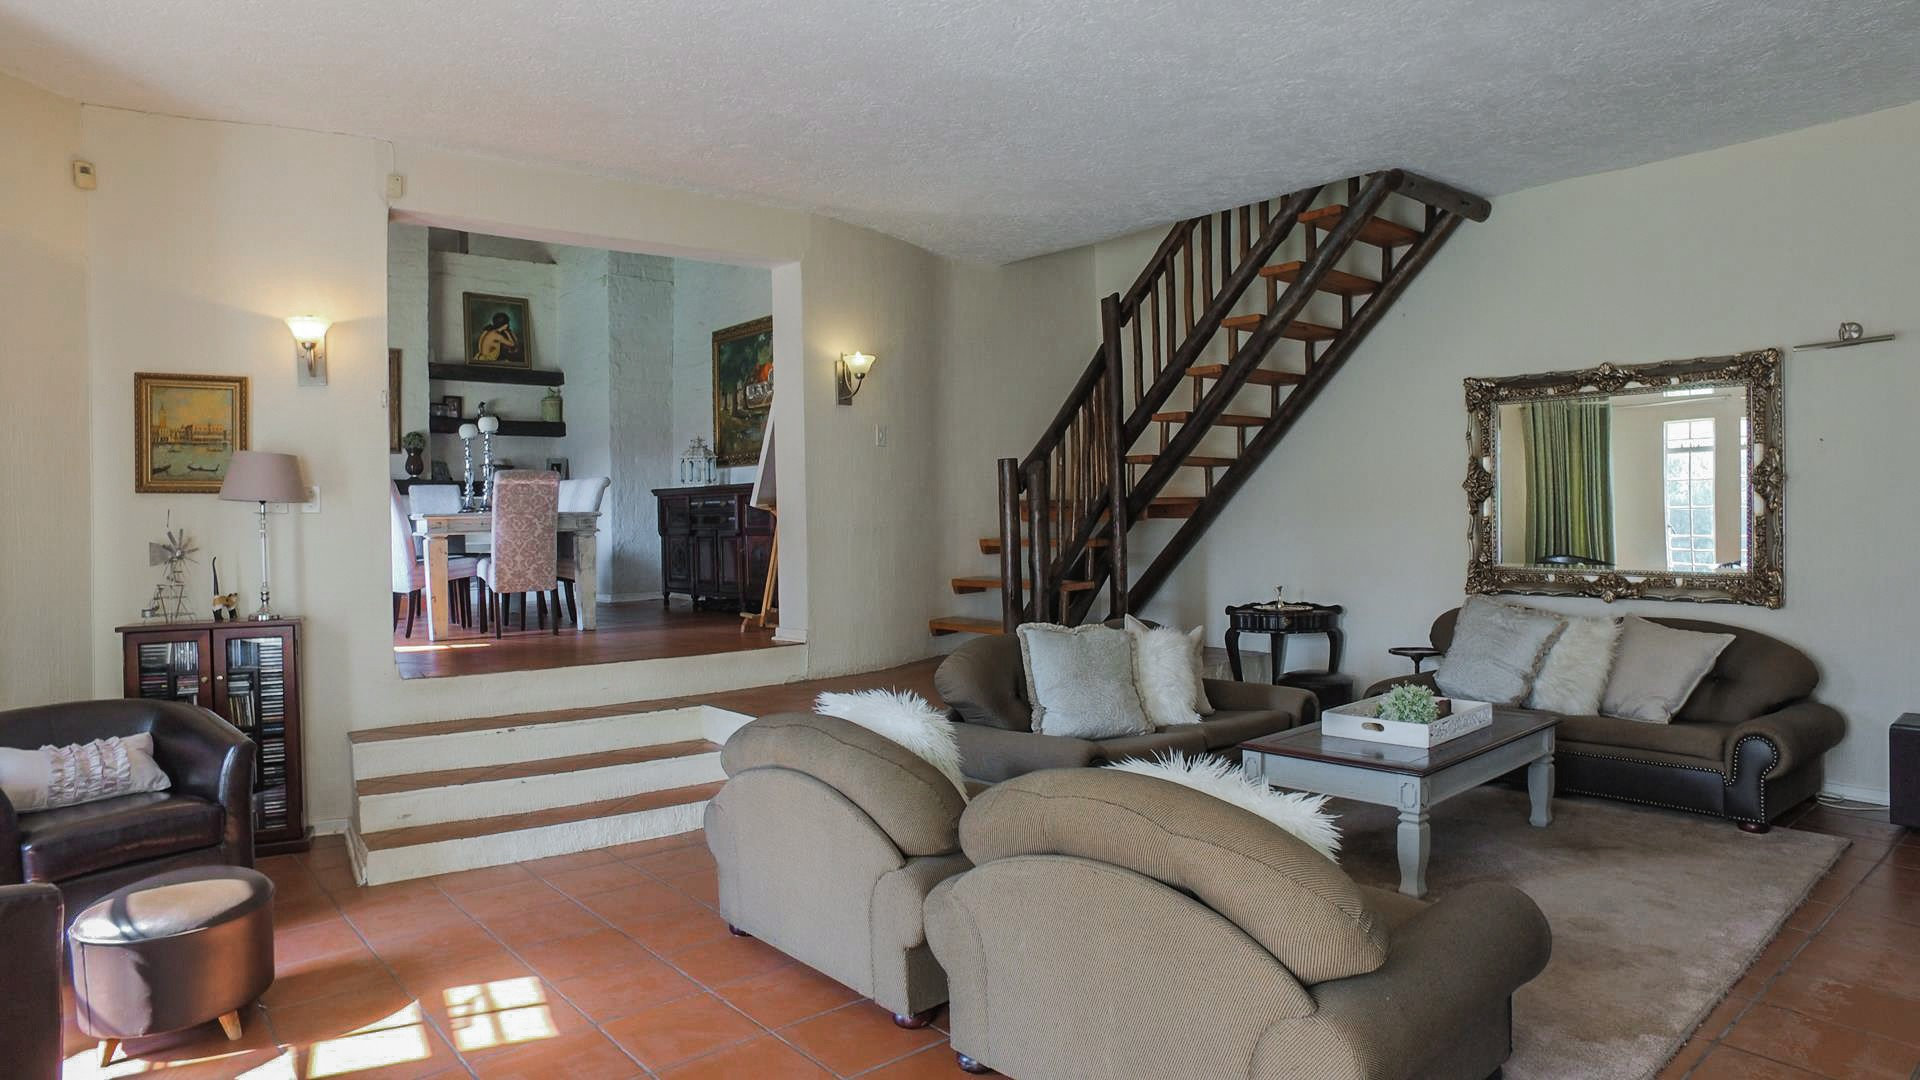 4 Bedroom House for sale in Fourways ENT0055006 : photo#2